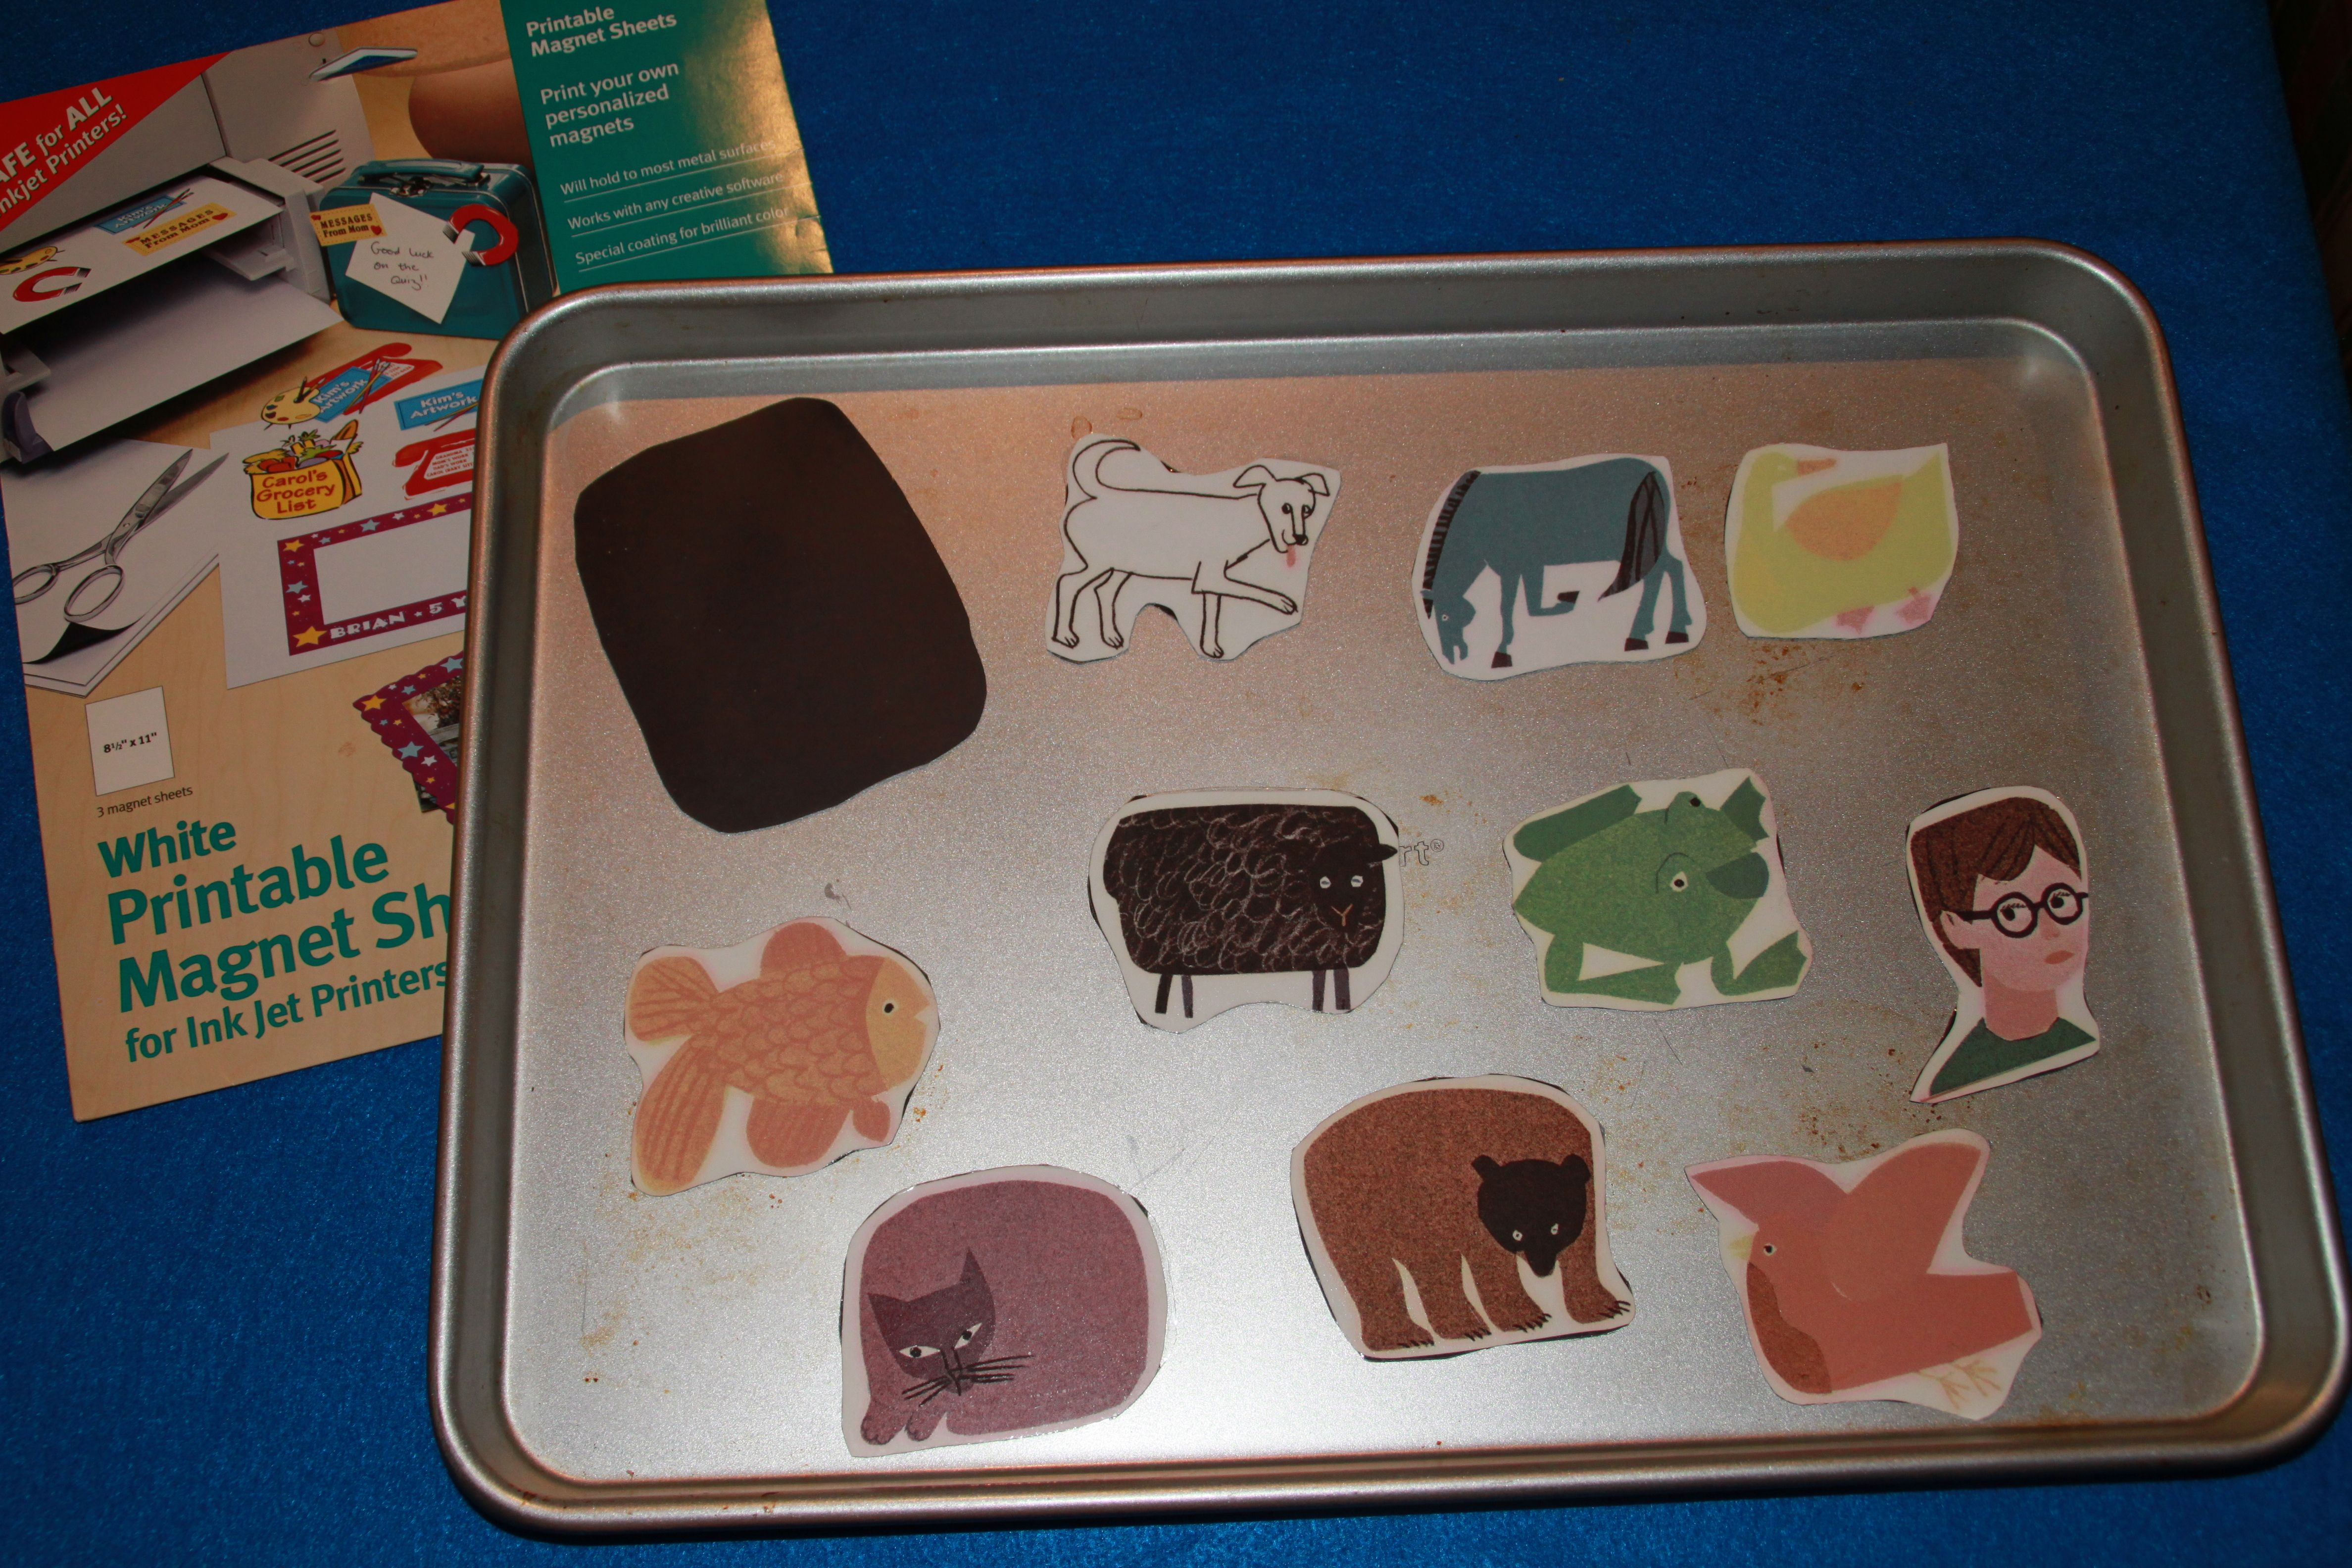 Use Printable Magnetic Sheets For Story Retelling Props Like This One In The Library Area Of A